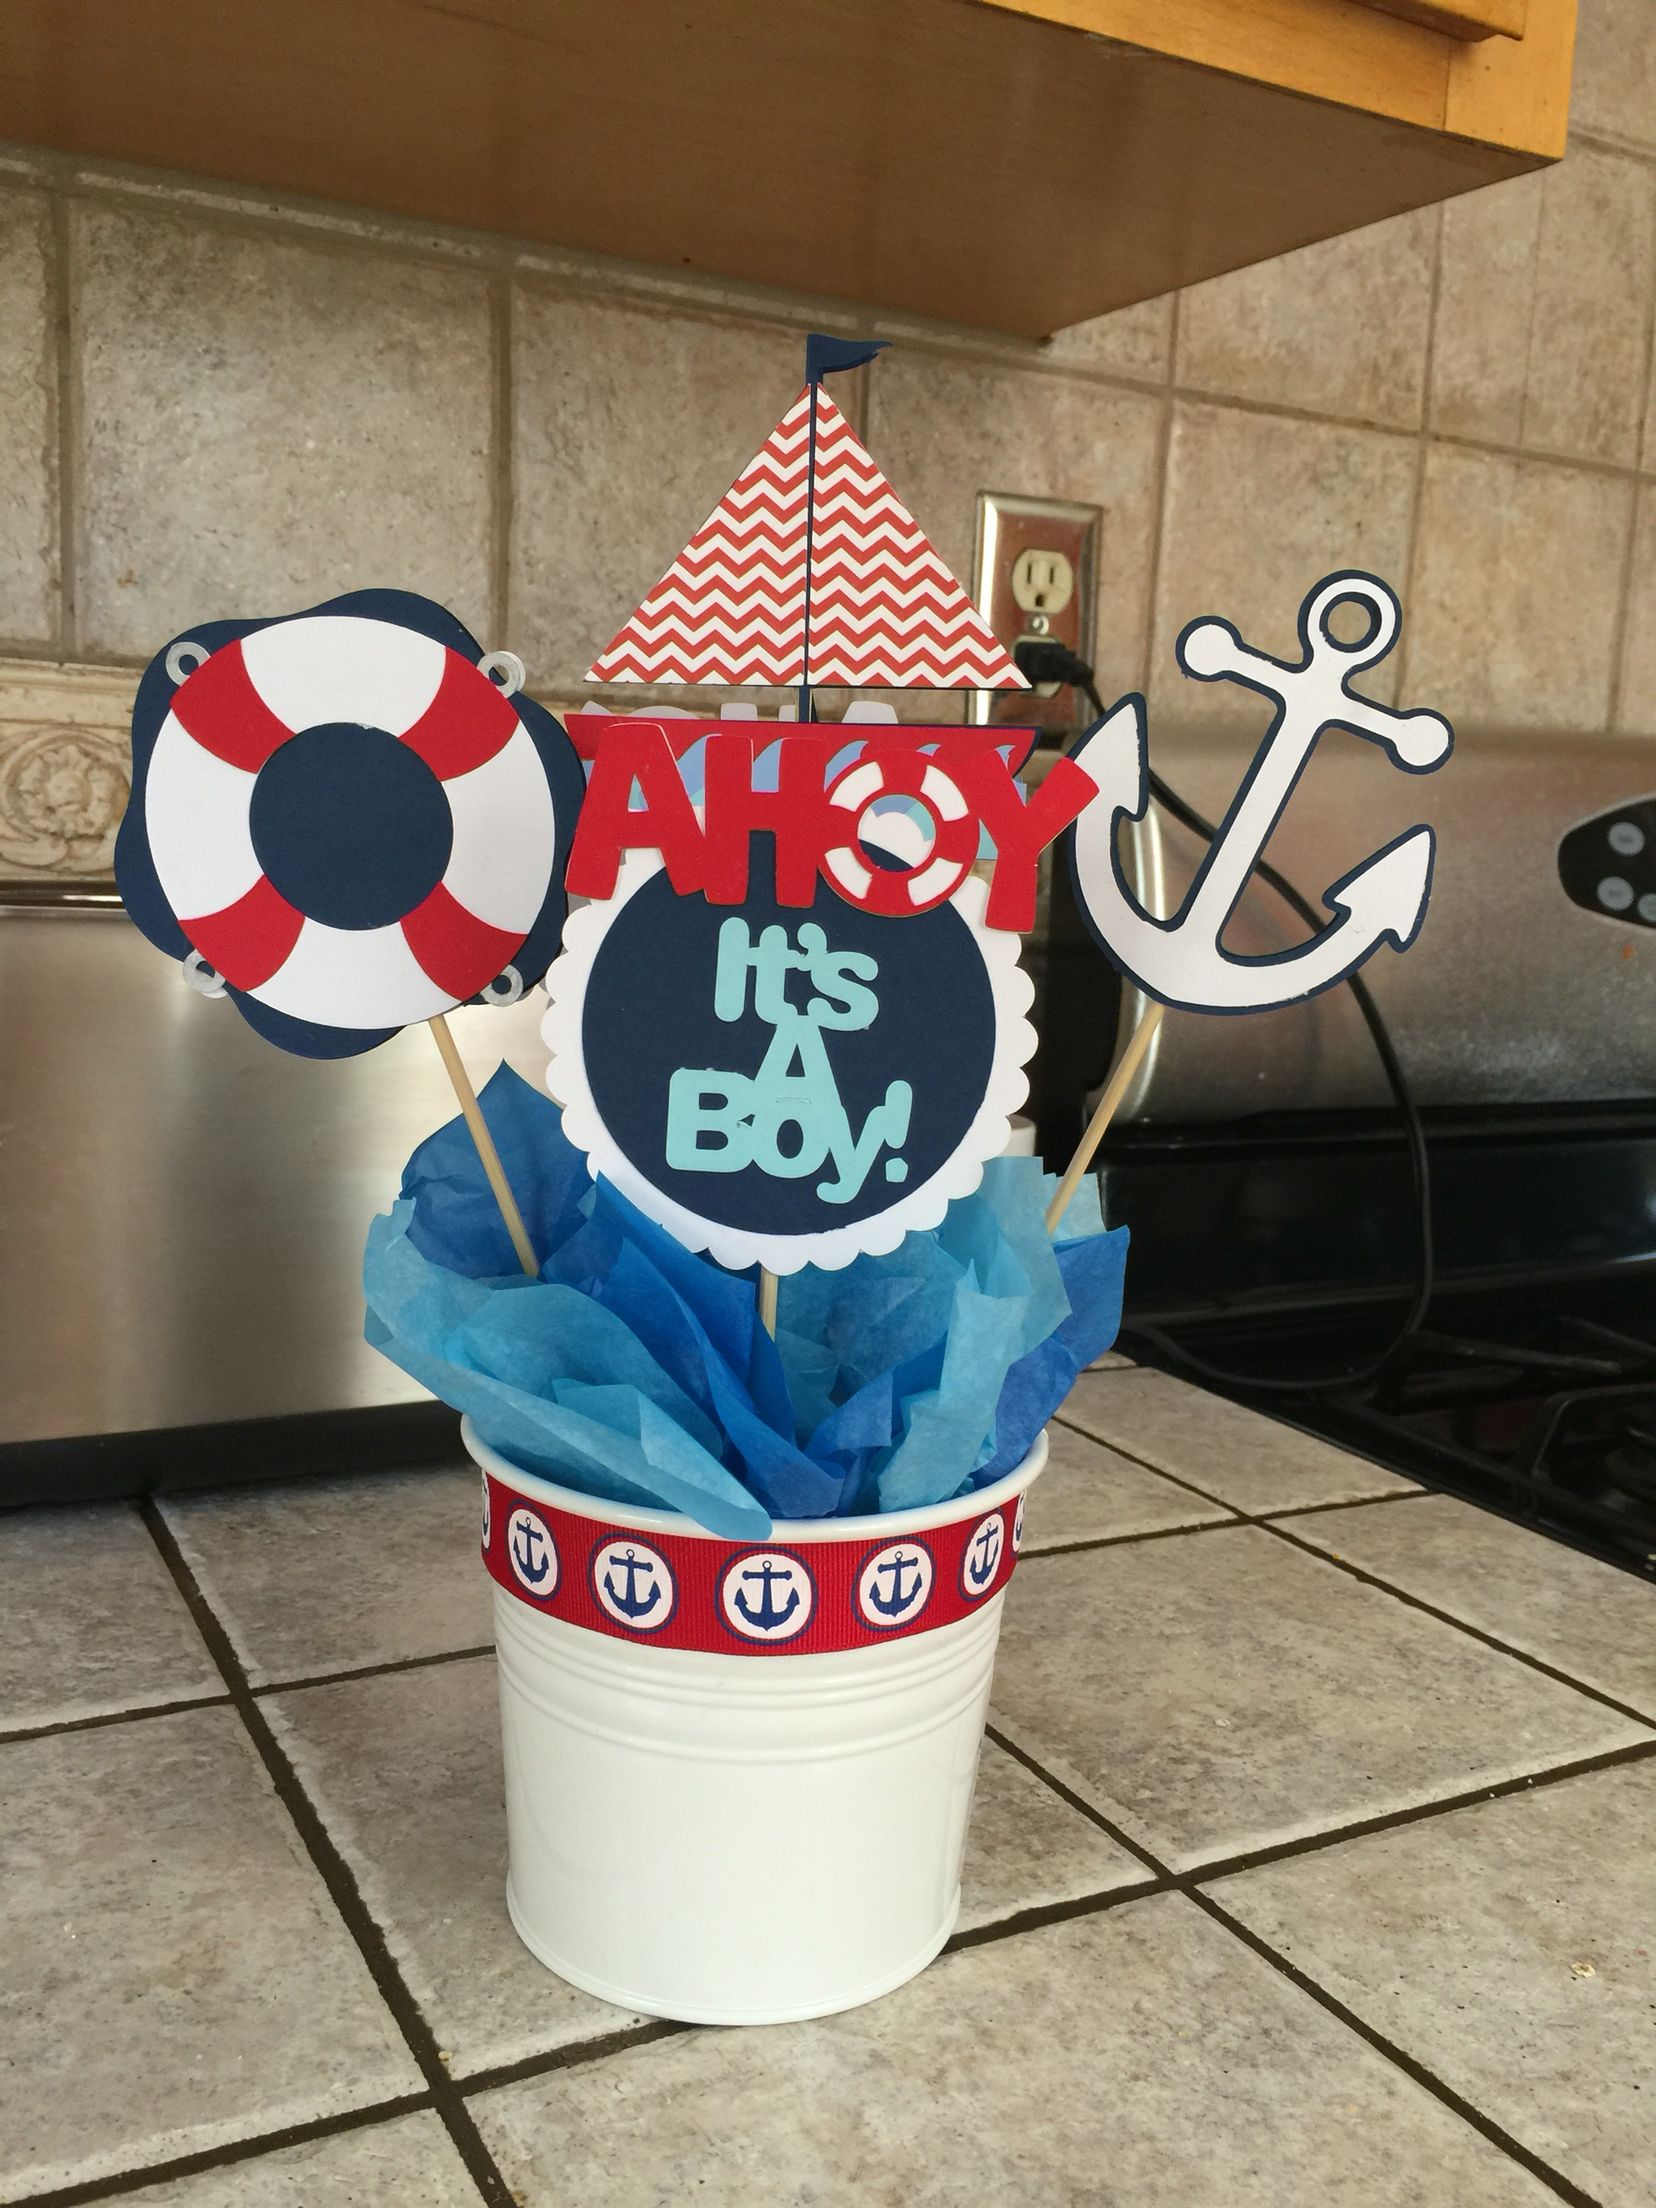 Nautical Baby Shower cutouts $10 per set includes 5 handmade